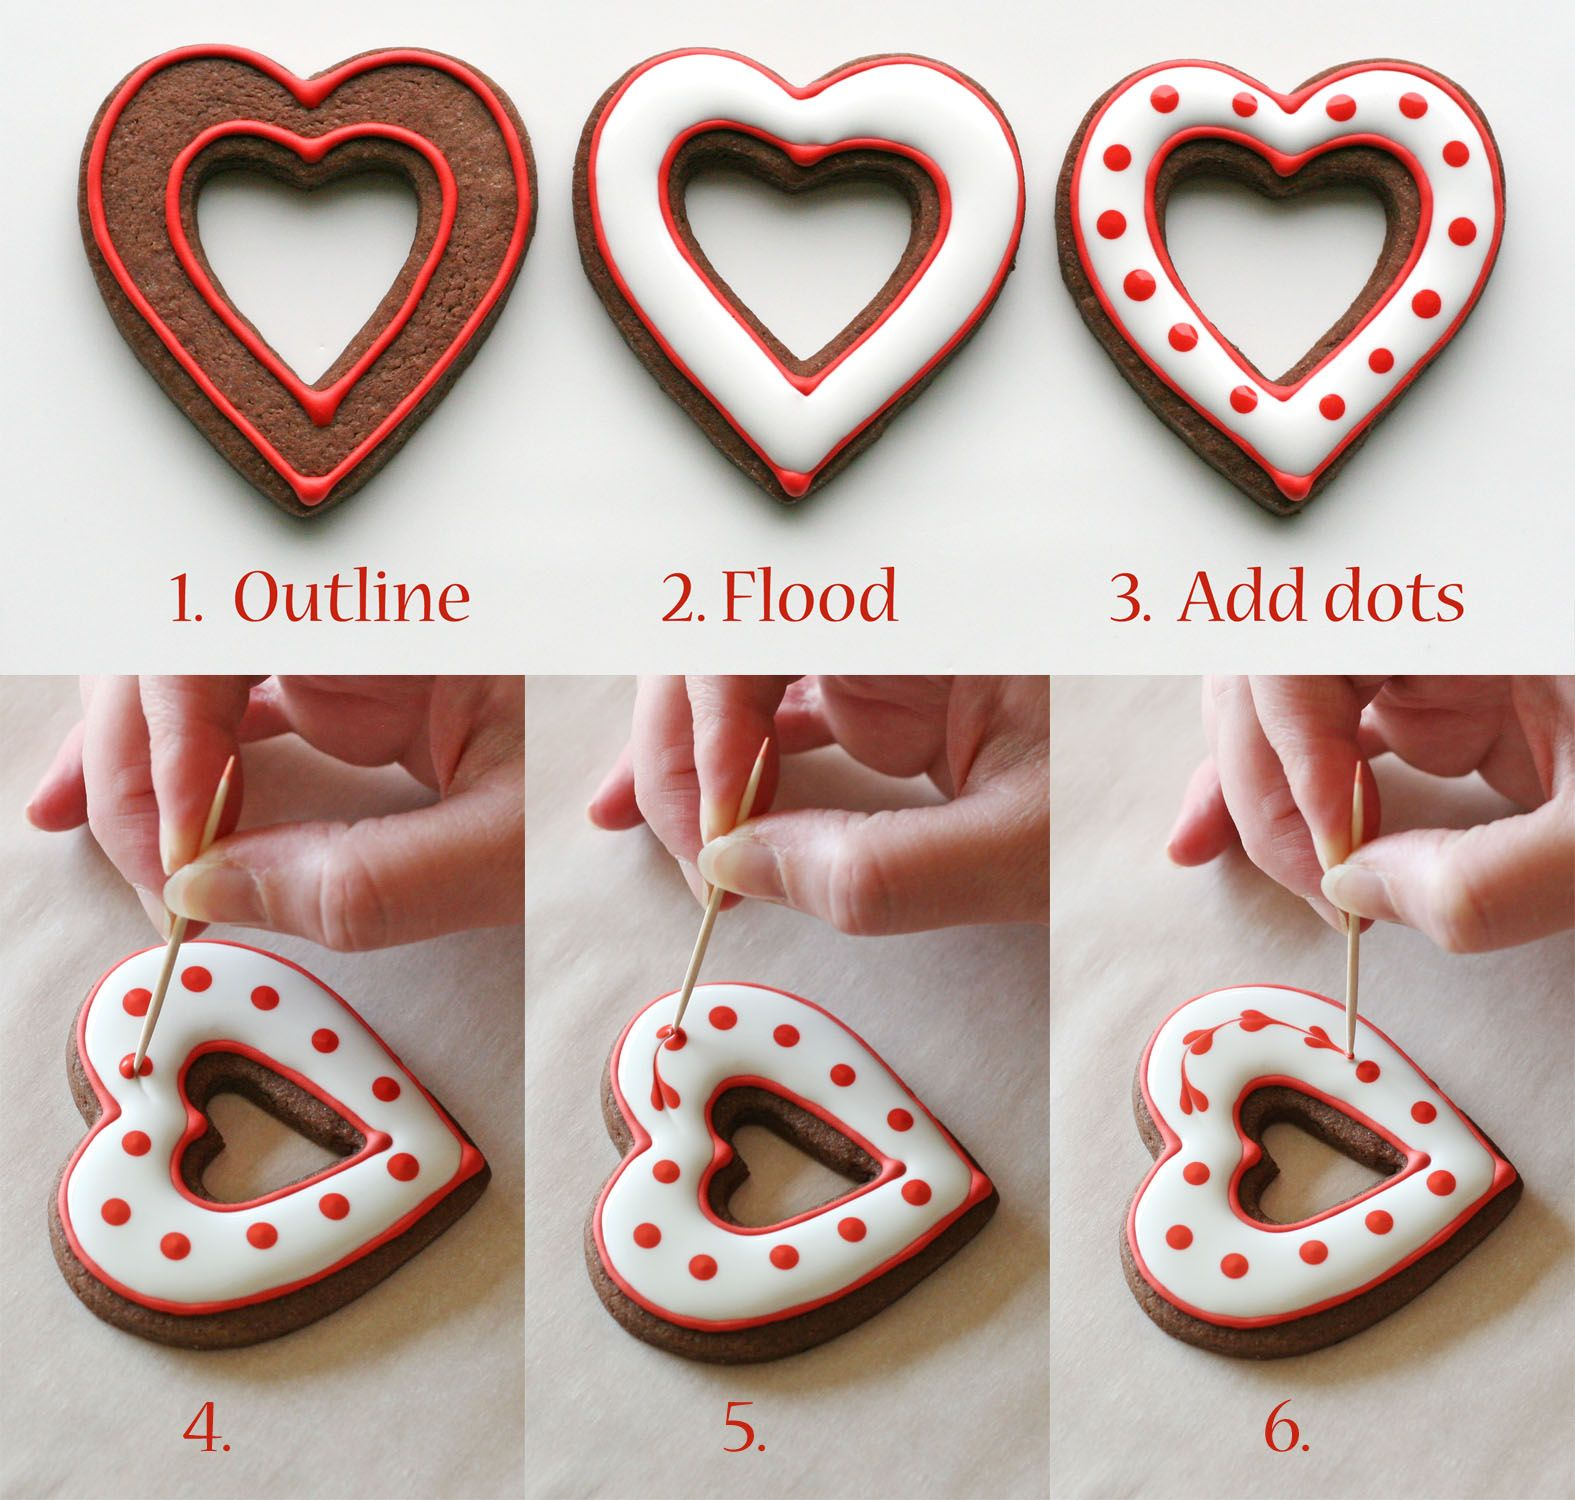 simple heart valentines cookies decorating how to - Decorating Valentine Cookies